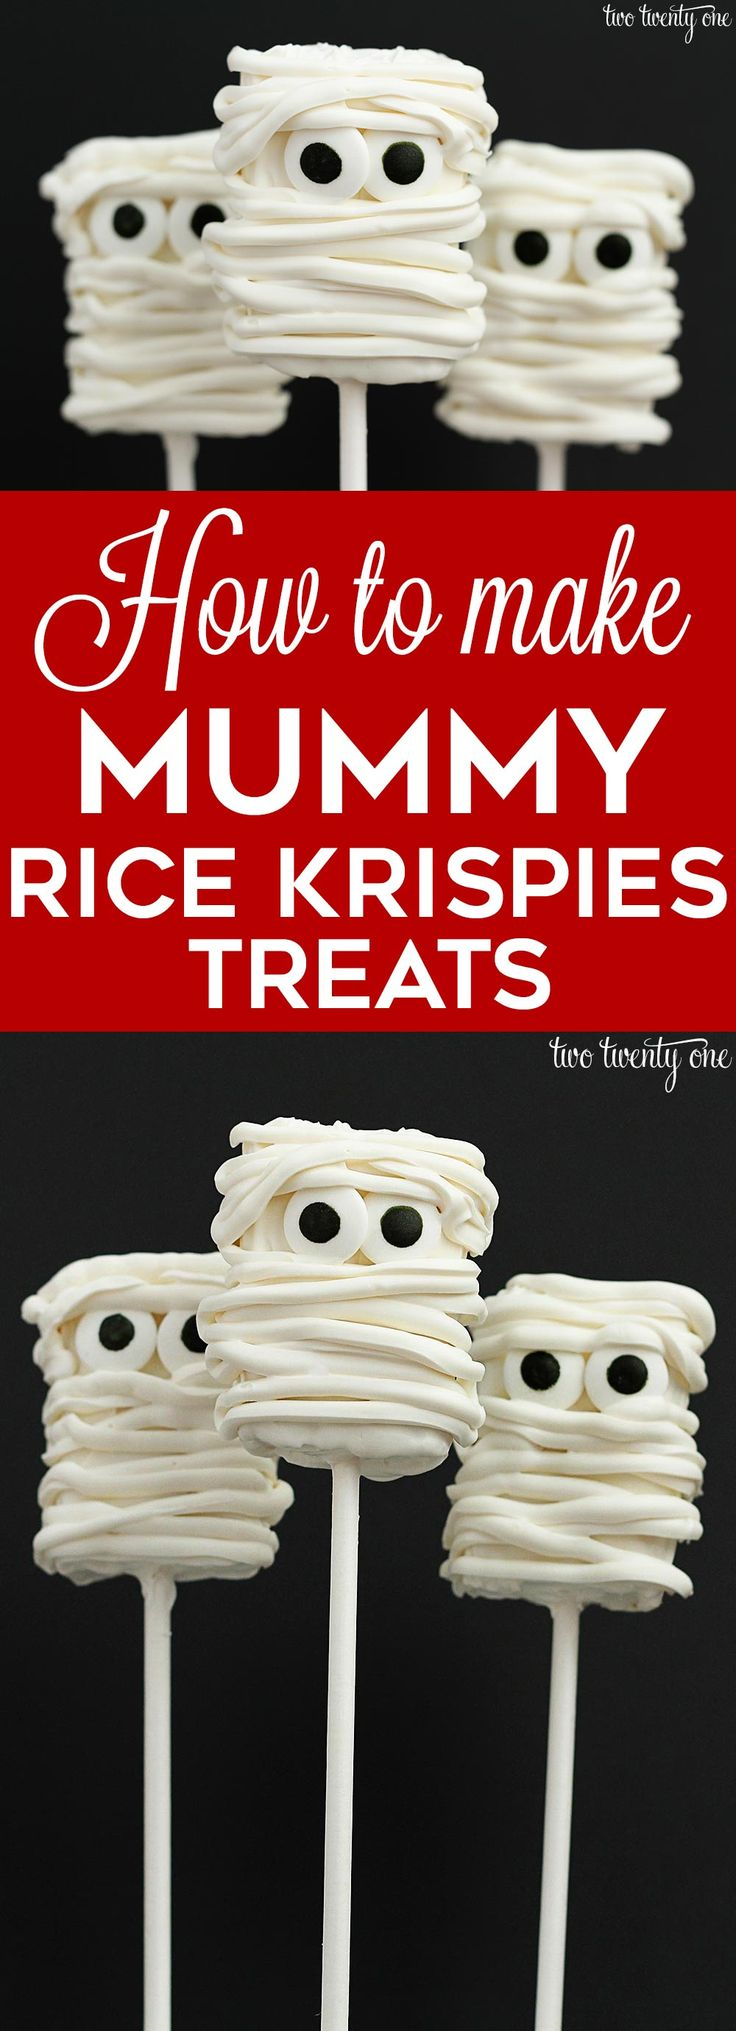 Prepare yourself for the cutest, yet still quite spooky, mummy Rice Krispies treats. Adorable, right? And I even made a quick video of myself making them. Remember, I'm attempting to land a hand modeling contract AND win an Oscar by the year's end. After I finished editing the video, I showed it to Brad. While watching …